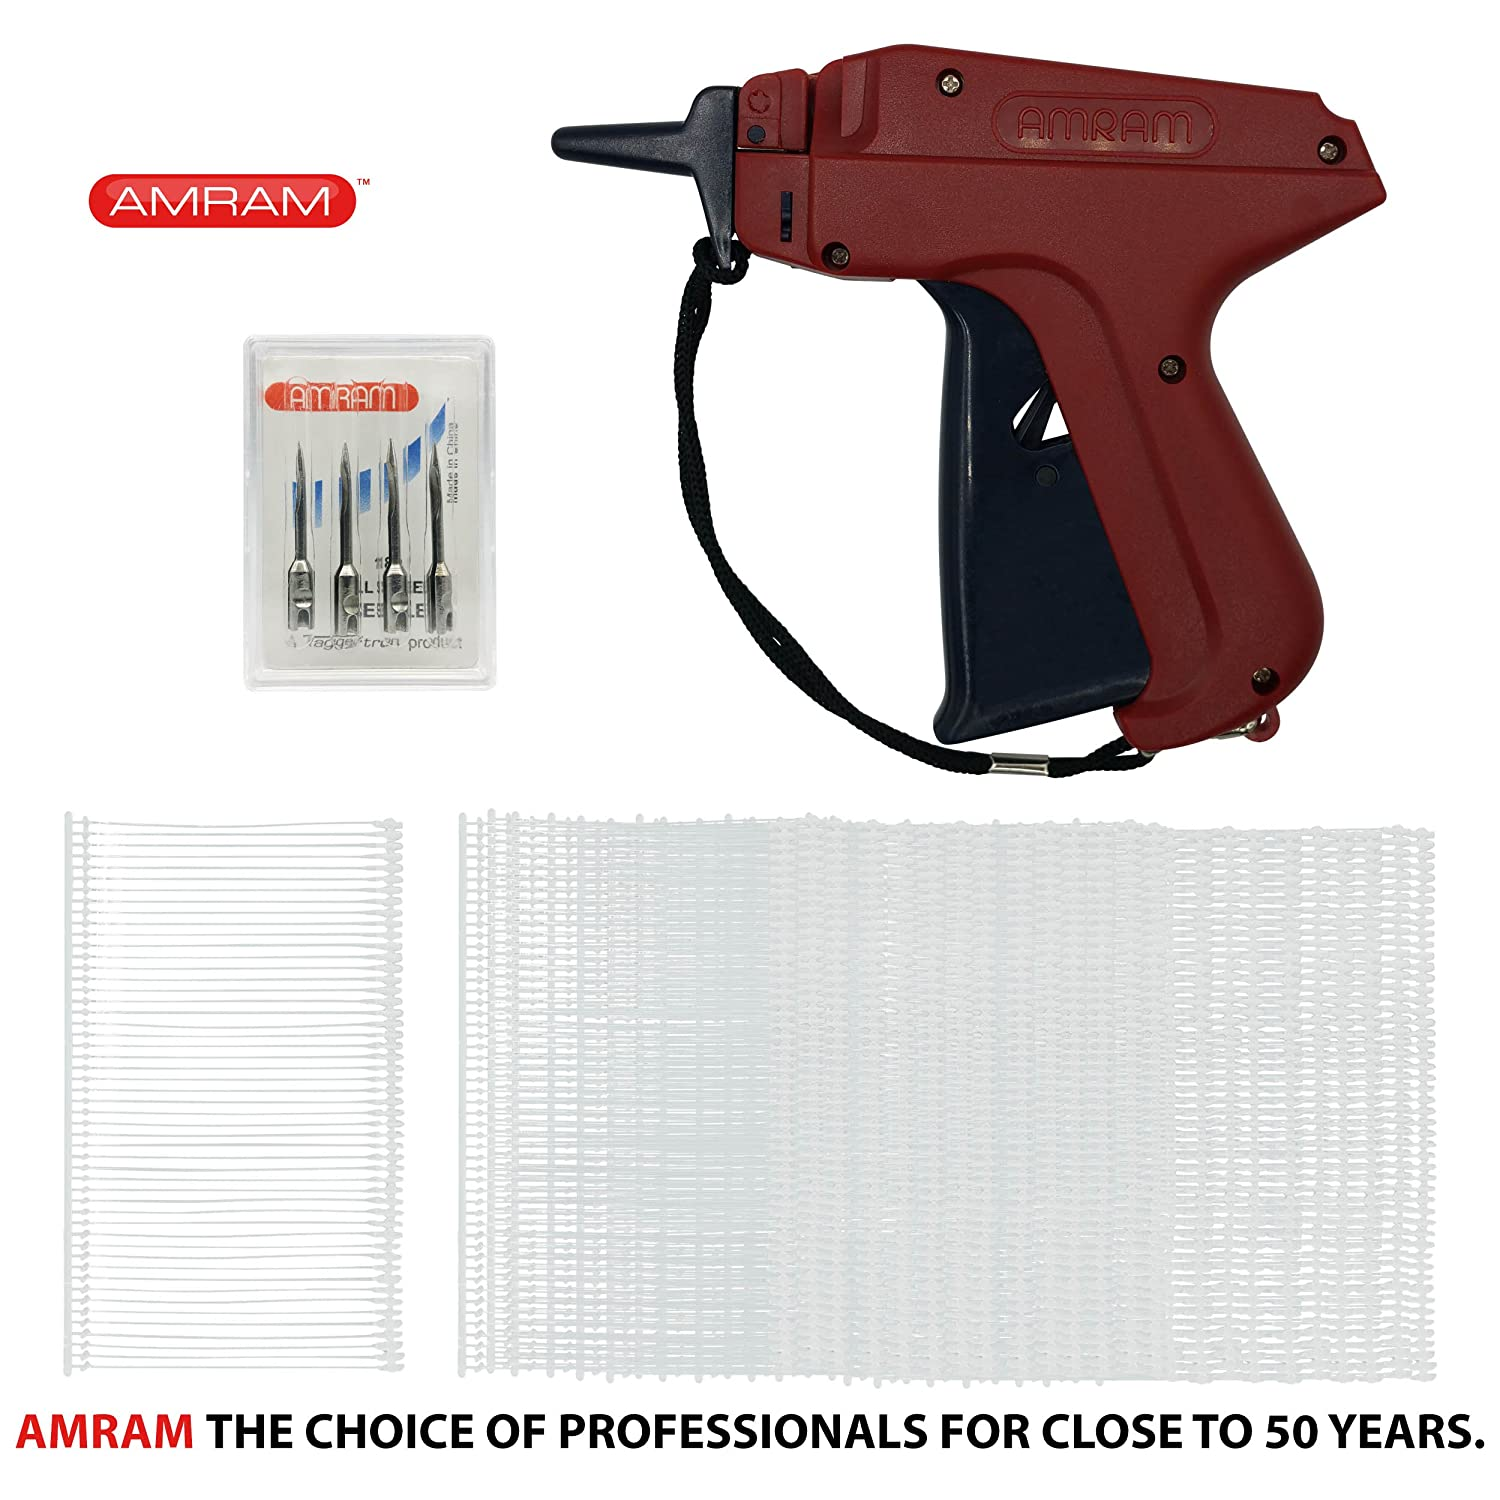 Amram Tagger Standard Tag Attaching Tagging Gun BONUS KIT with 5 Needles and 1250 2 Standard Attachments Fasteners